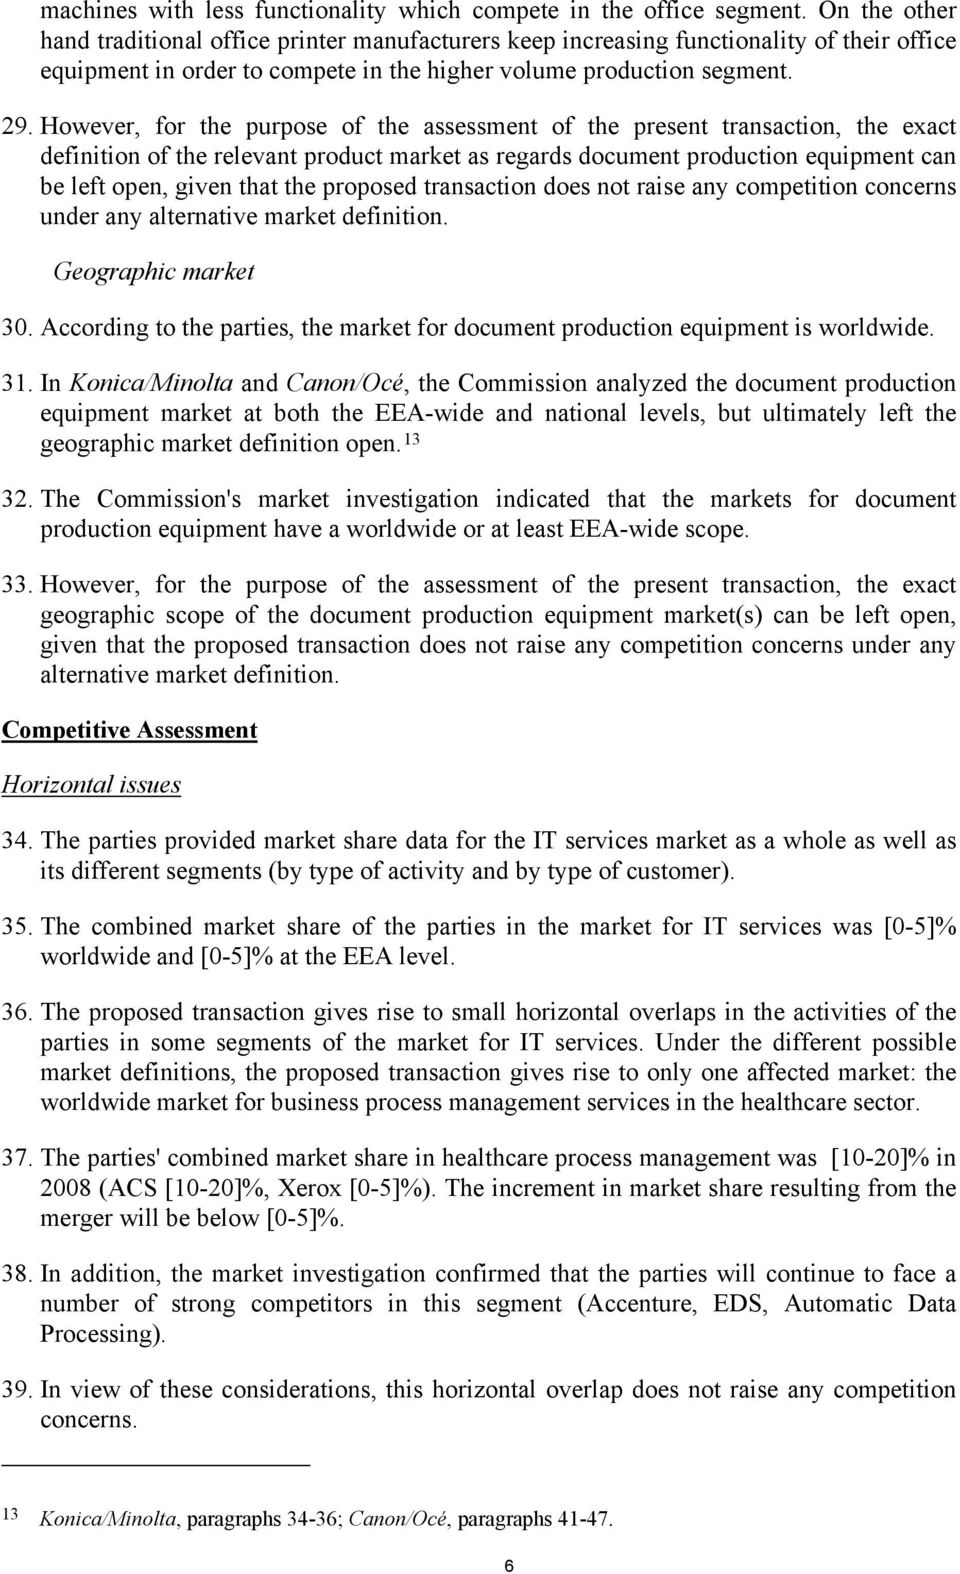 However, for the purpose of the assessment of the present transaction, the exact definition of the relevant product market as regards document production equipment can be left open, given that the